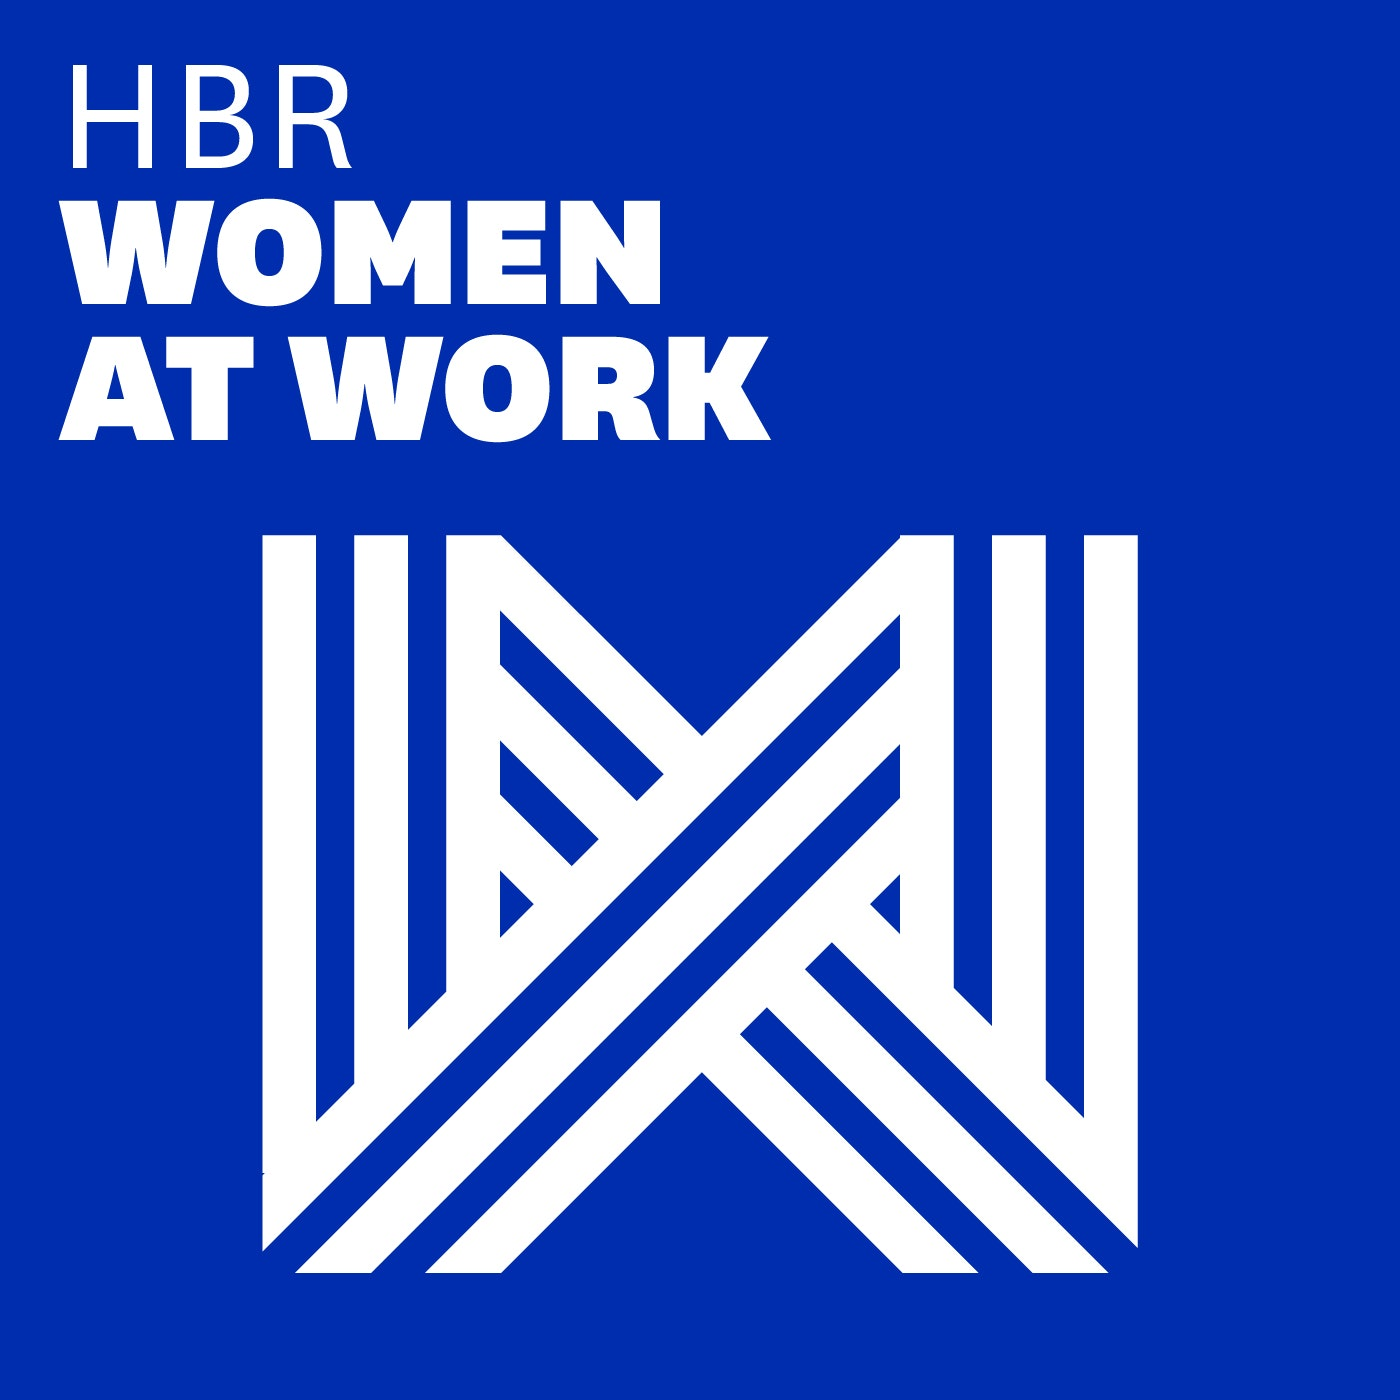 HBR Women at Work